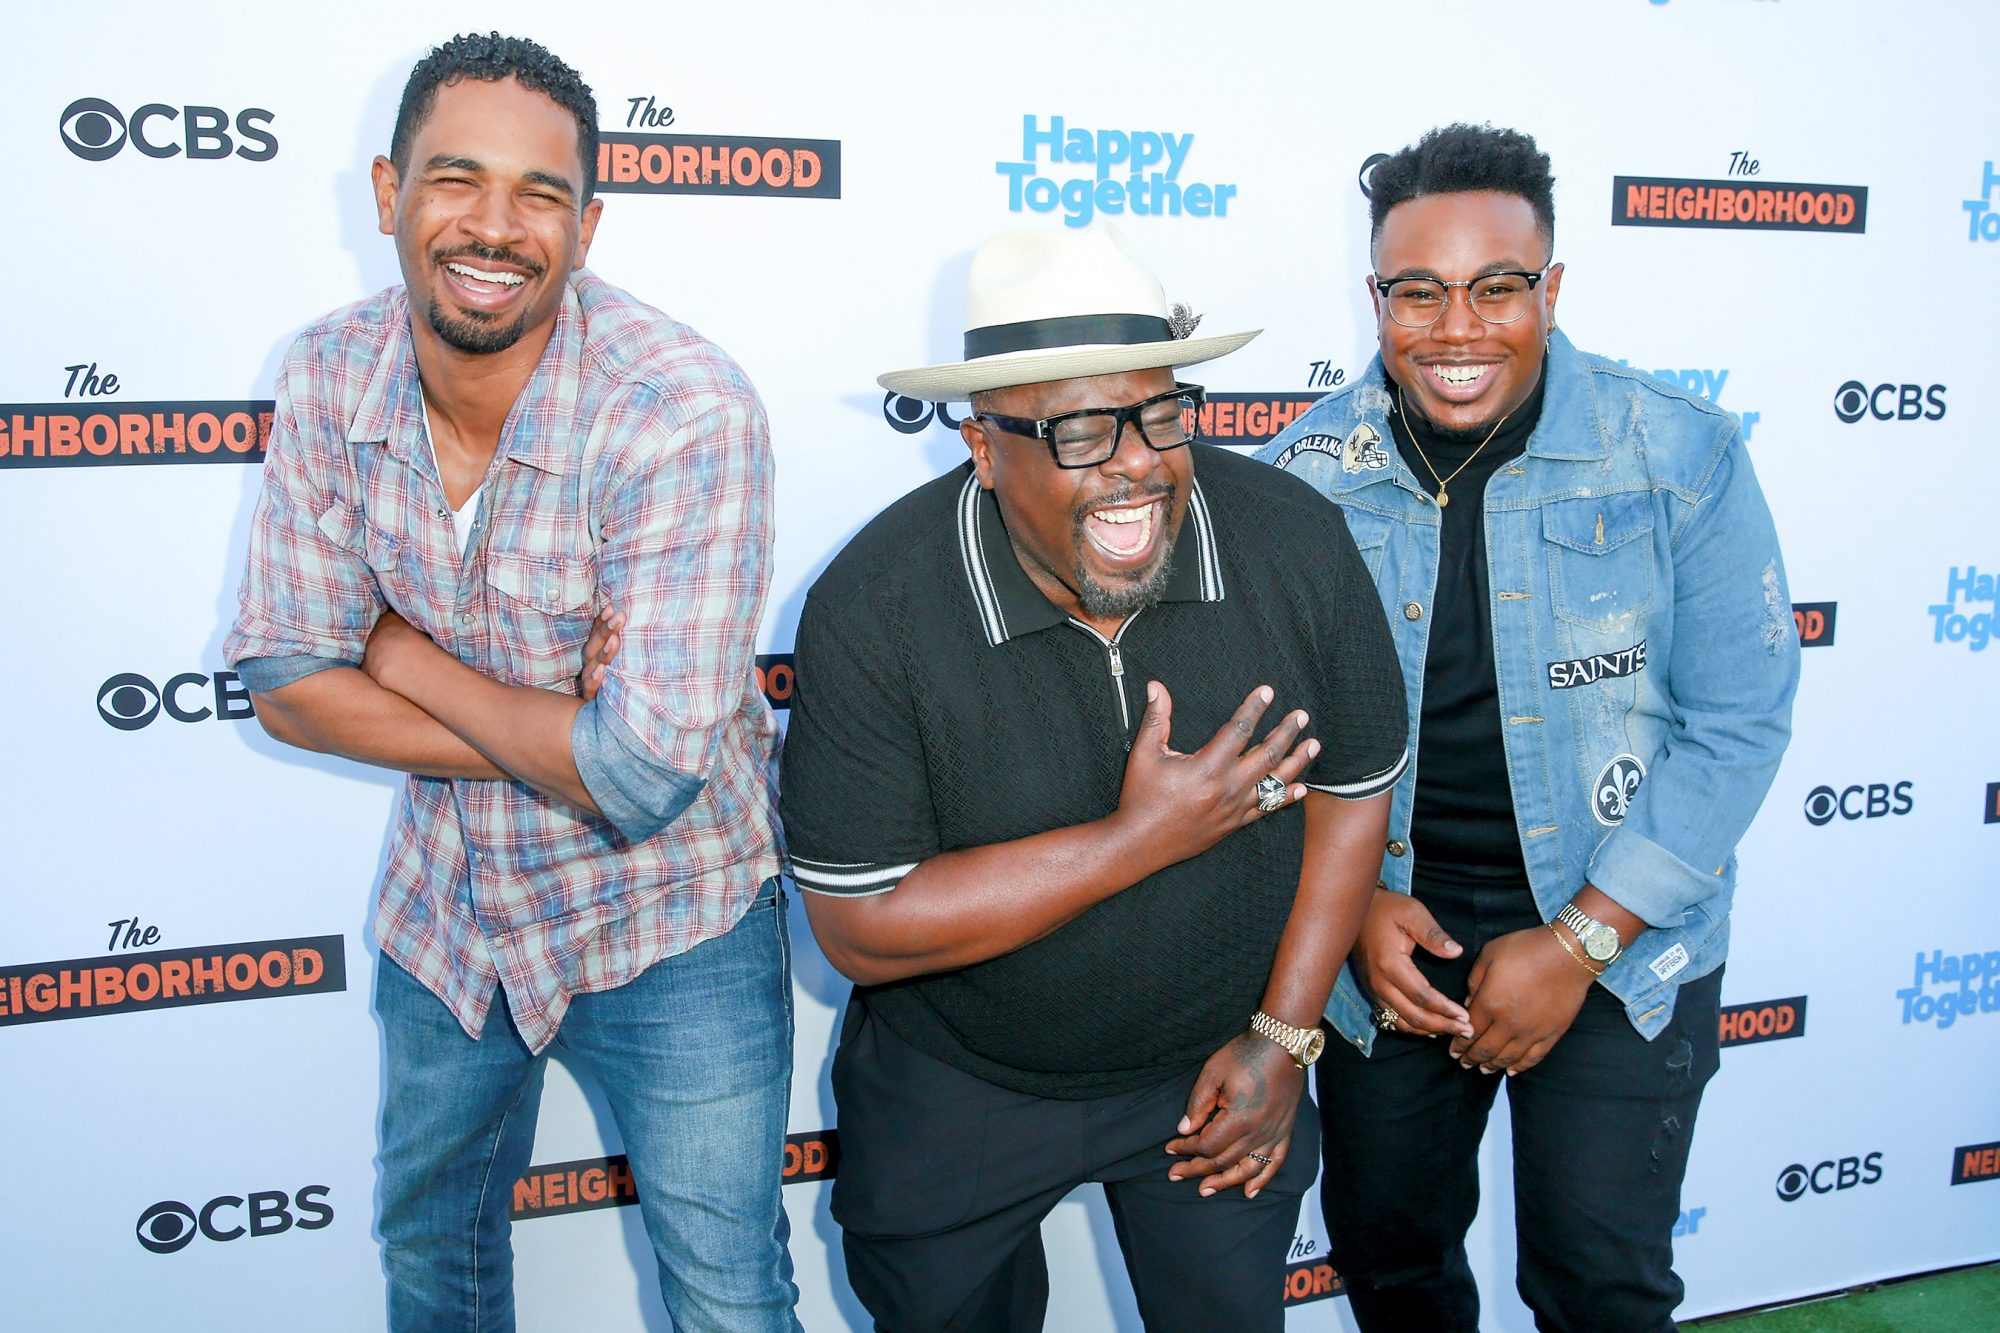 """CBS Hosts Social Happy Hour Viewing Party For """"The Neighborhood"""" And """"Happy Together"""""""